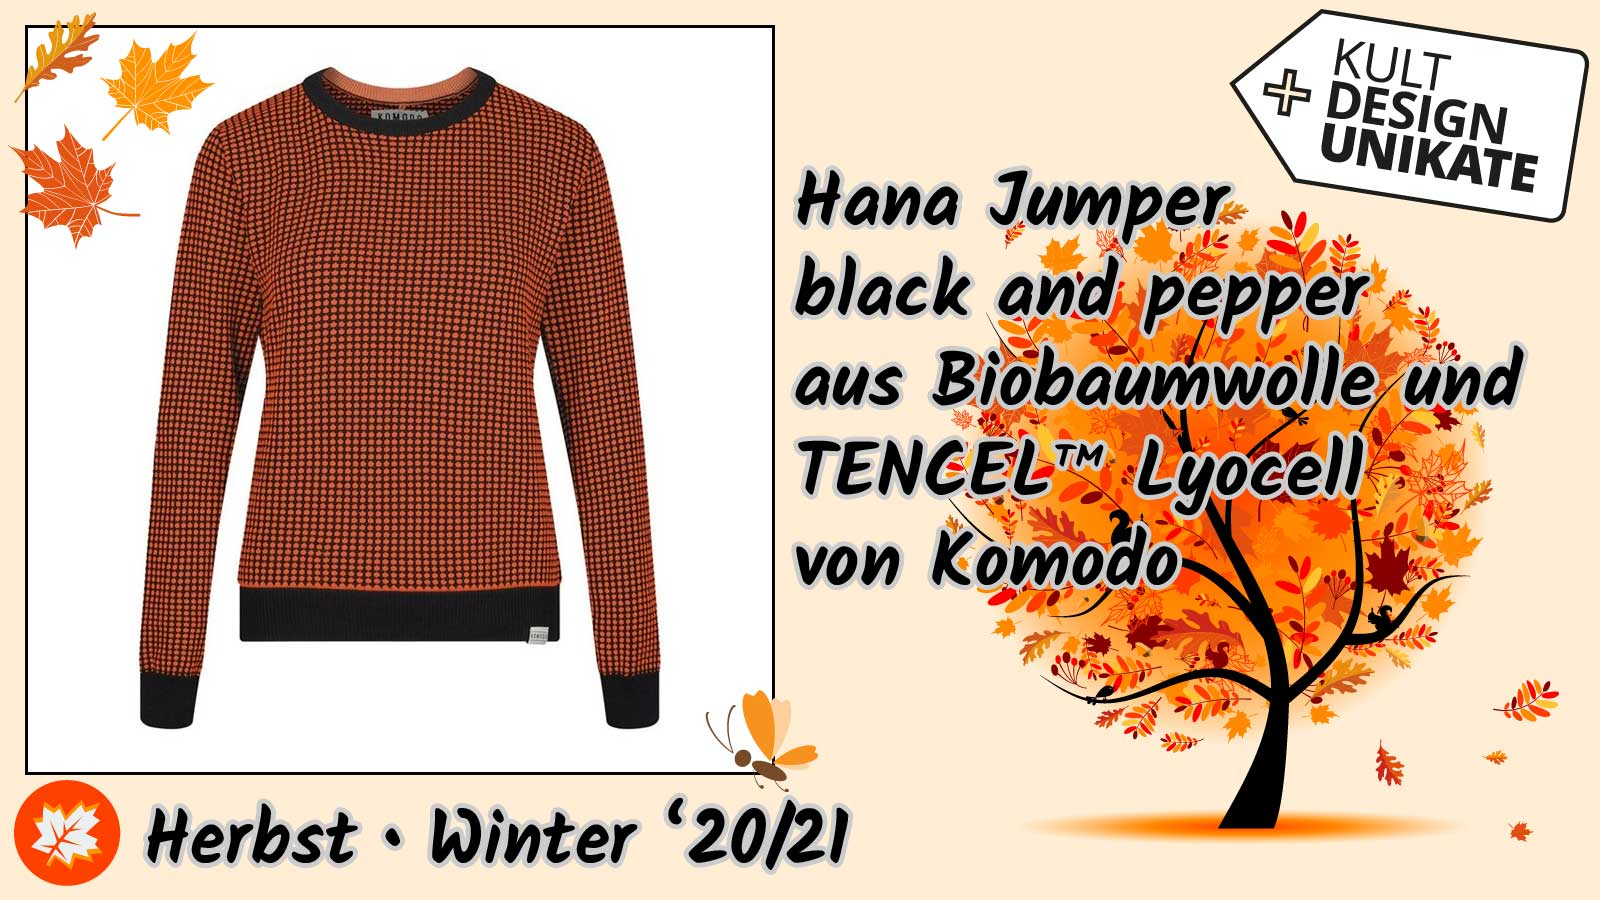 Komodo-Hana-Jumper-black-and-pepper